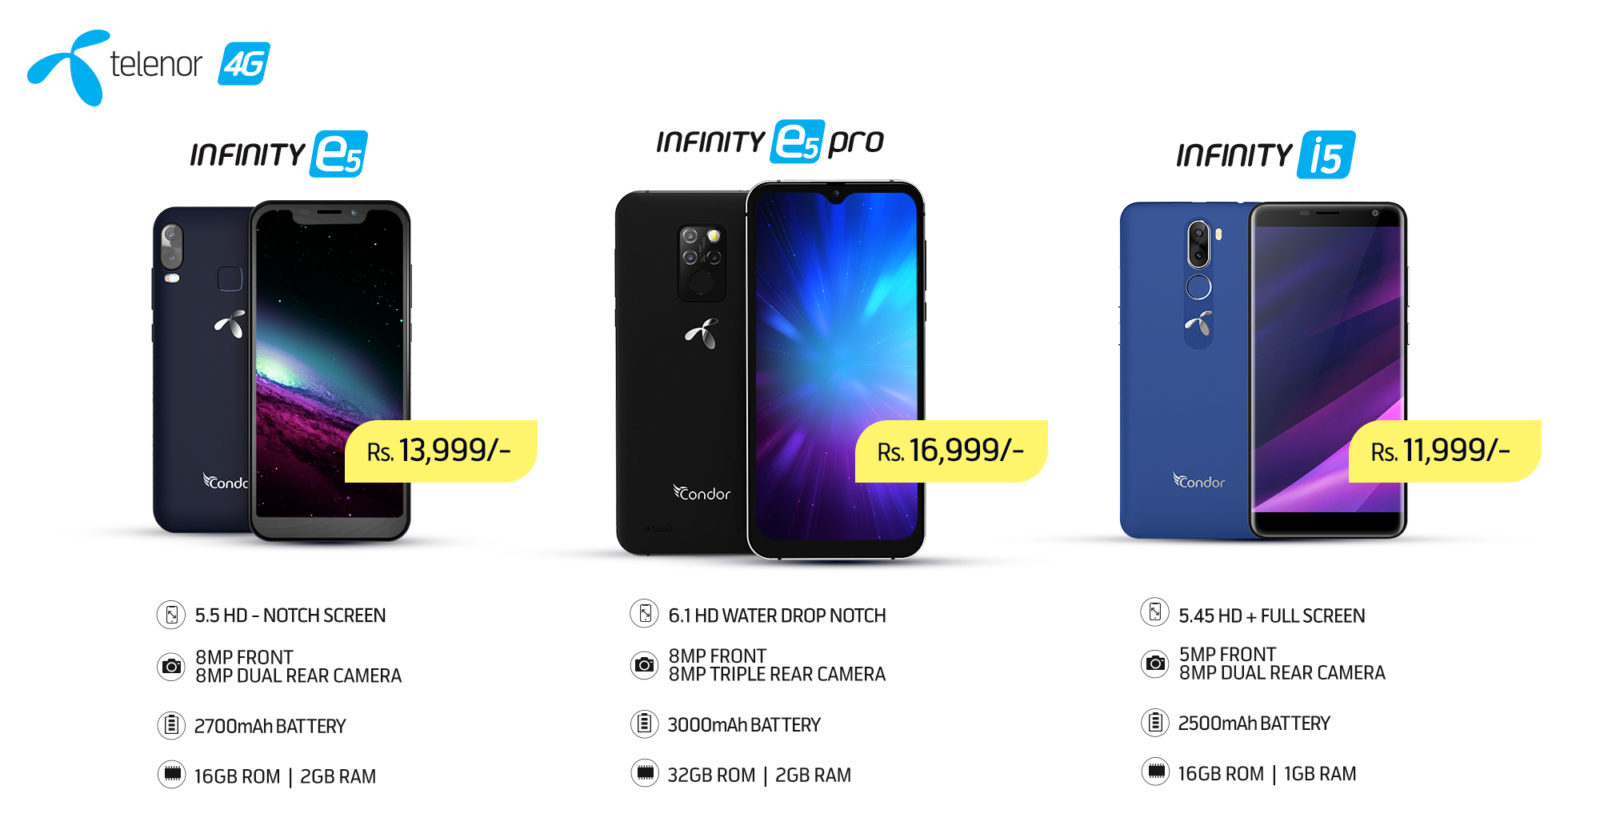 Telenor Pakistan Adds 3 New Infinity 5 Series Handsets to its range of mobile devices